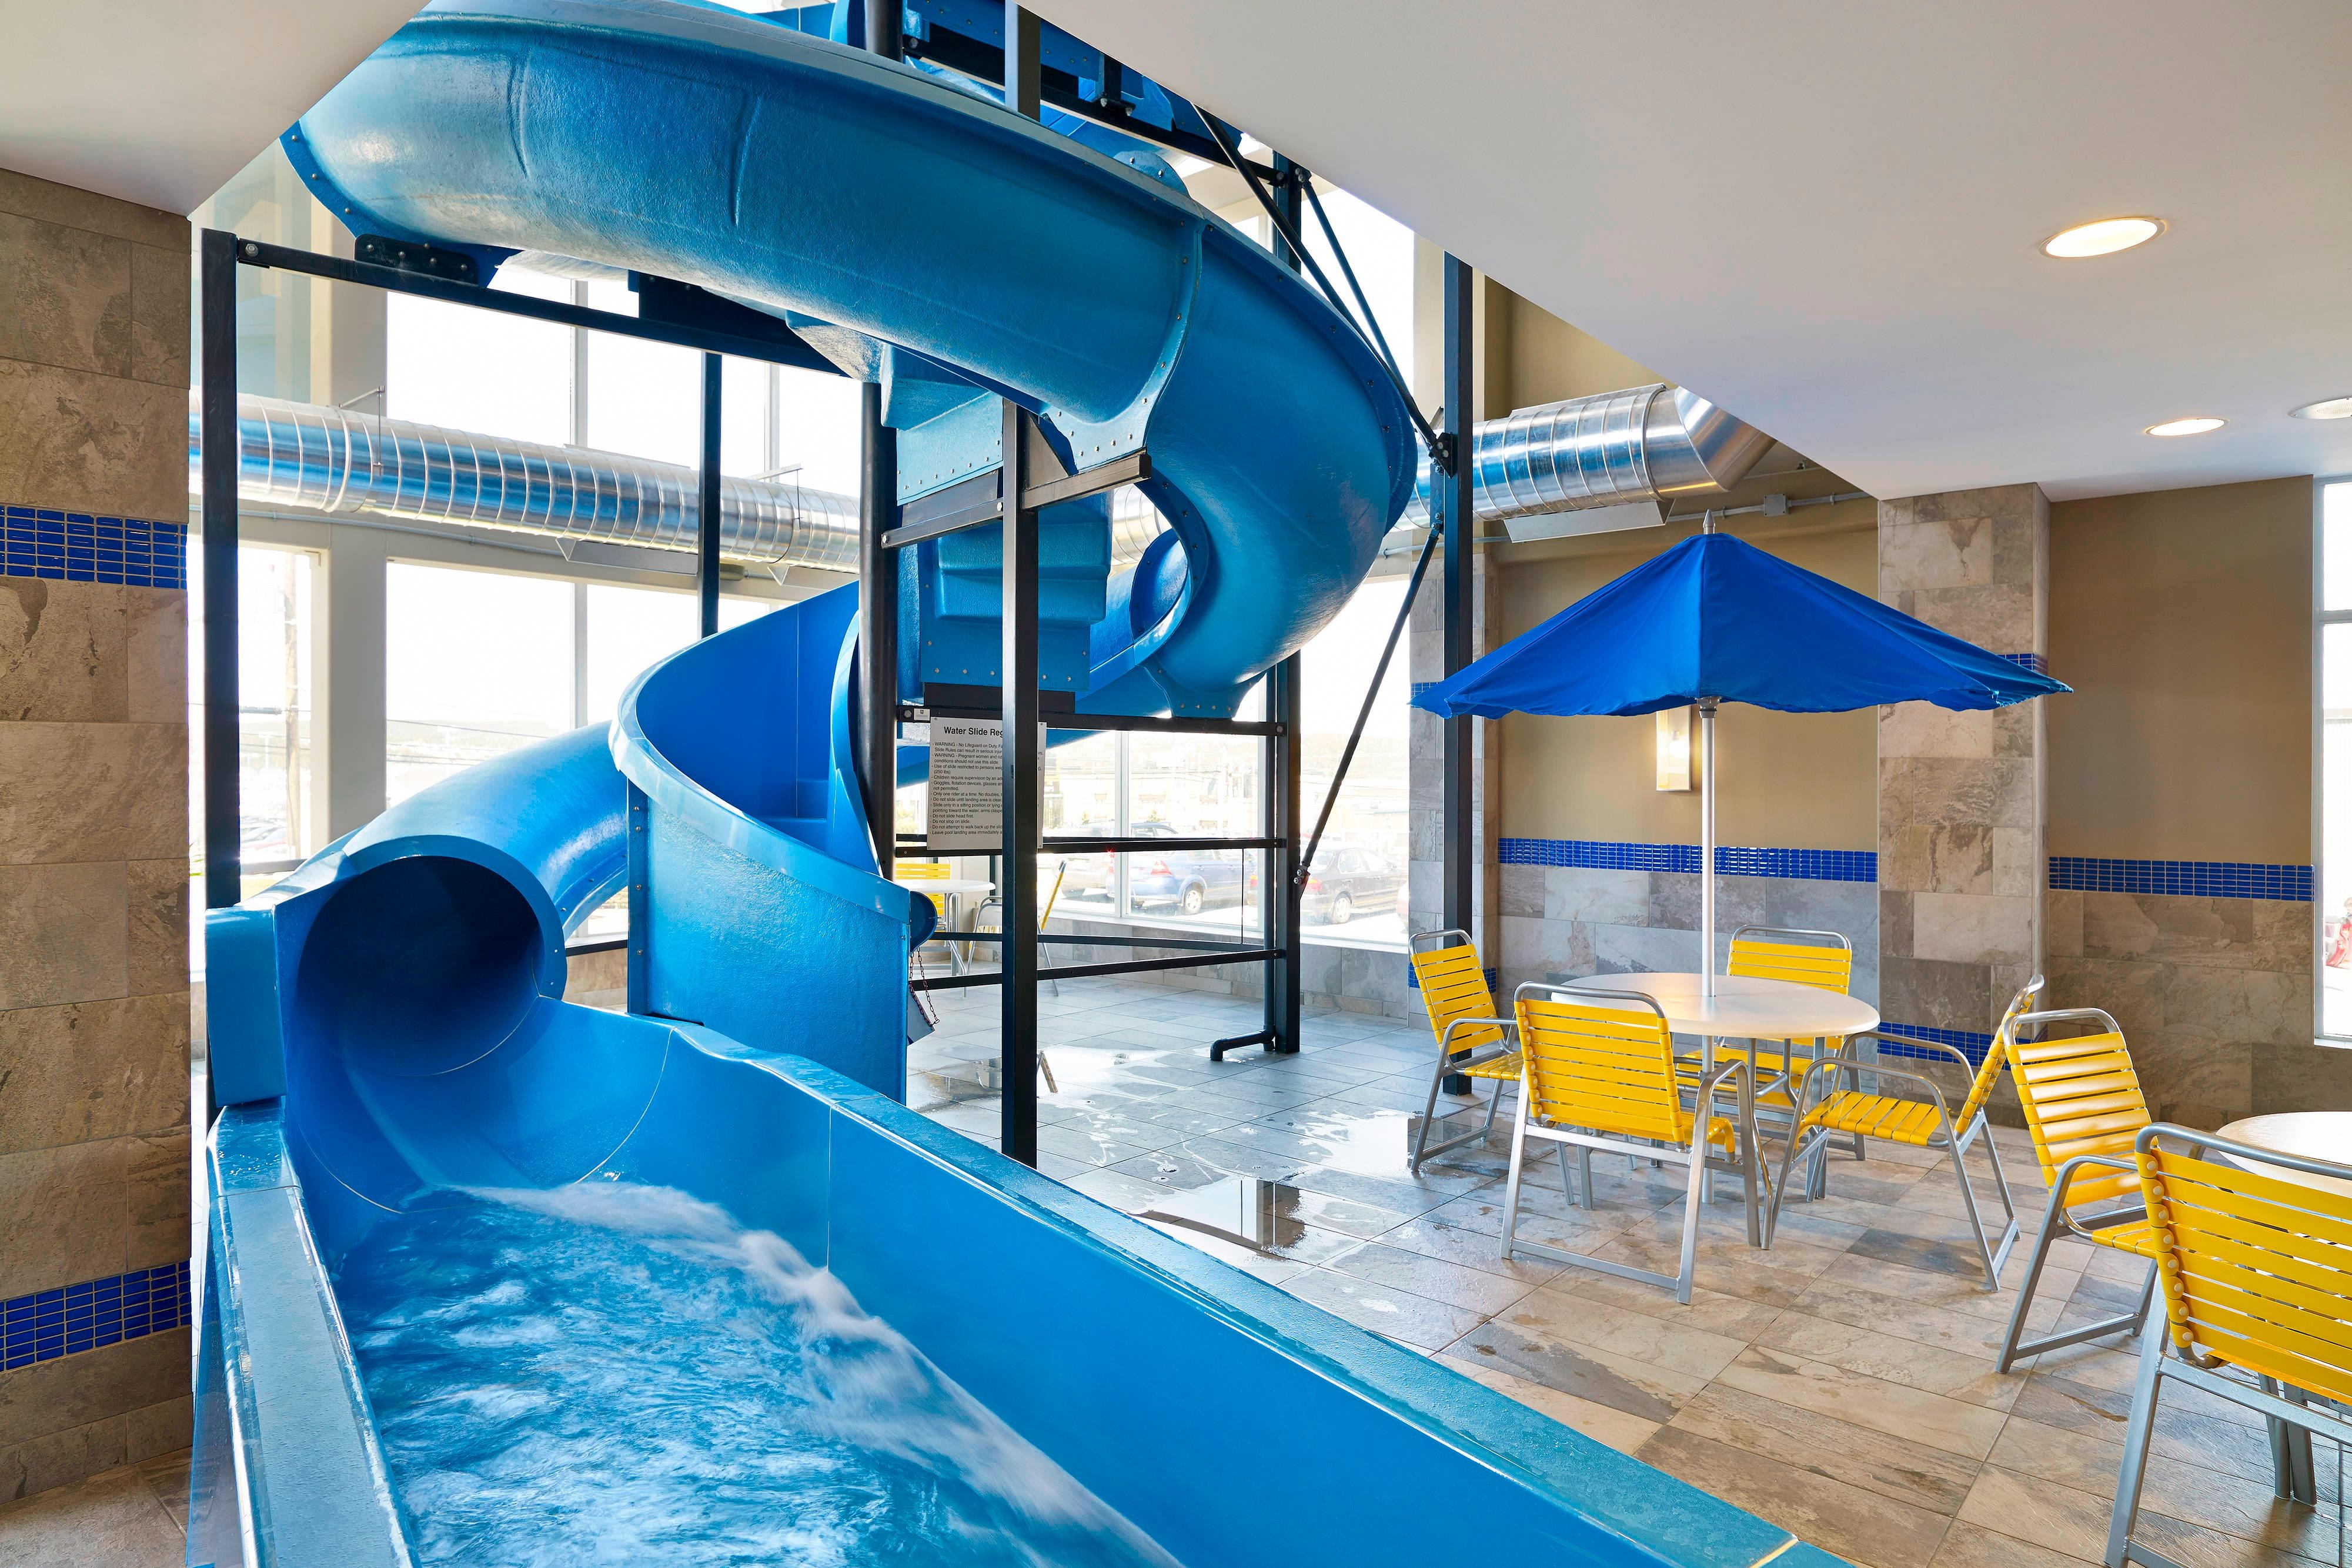 Newfoundland hotel with waterslide